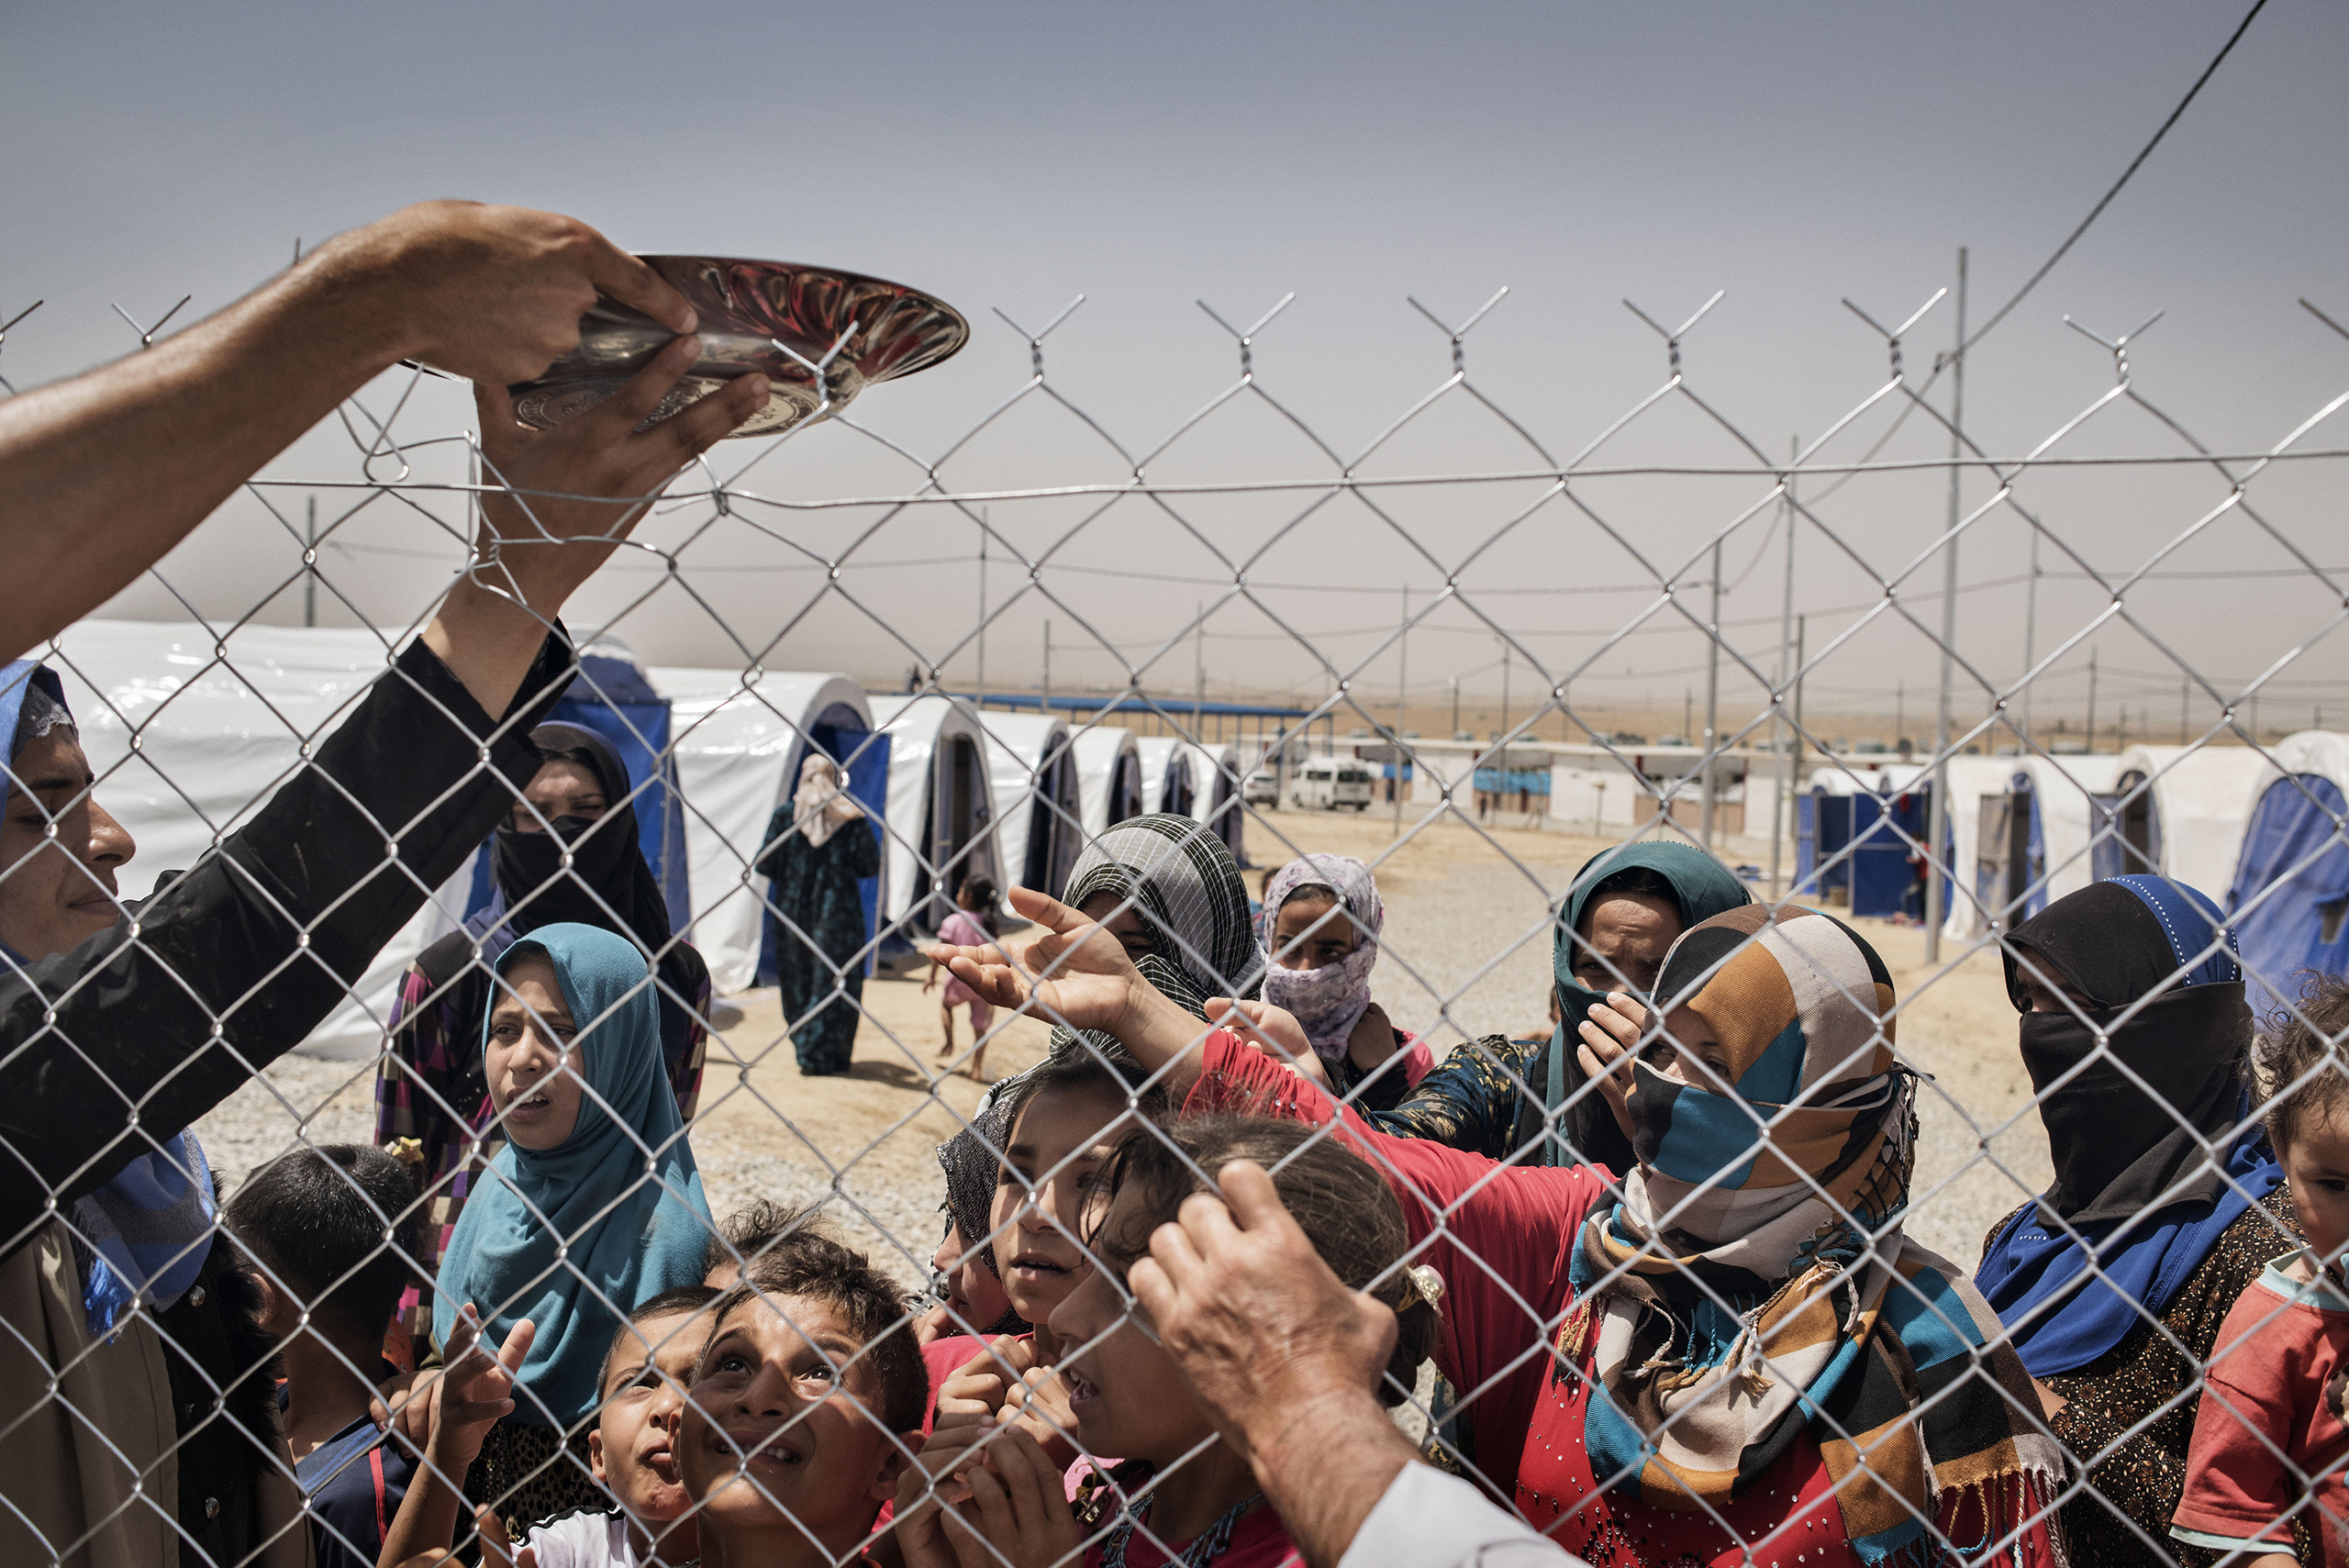 Displaced people stand in front of a fence in a camp near the Iraqi town of Makhmour, in northern Iraq, May 13, 2016. The United Nations said in April that as many as 30,000 people could be forced to flee instability in the Makhmour area, as the Iraqi military pursues an offensive against Islamic State militants in the district.